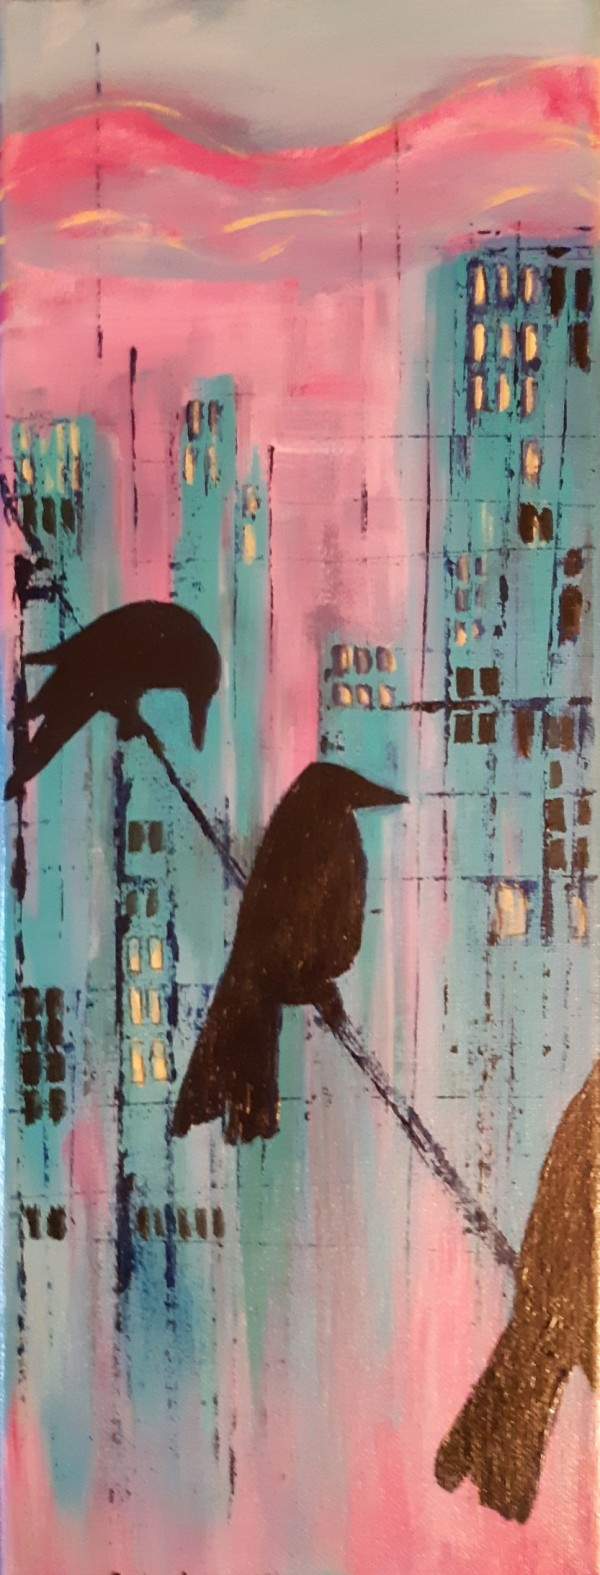 'Downtown Crows' by Bonnie Schnitter